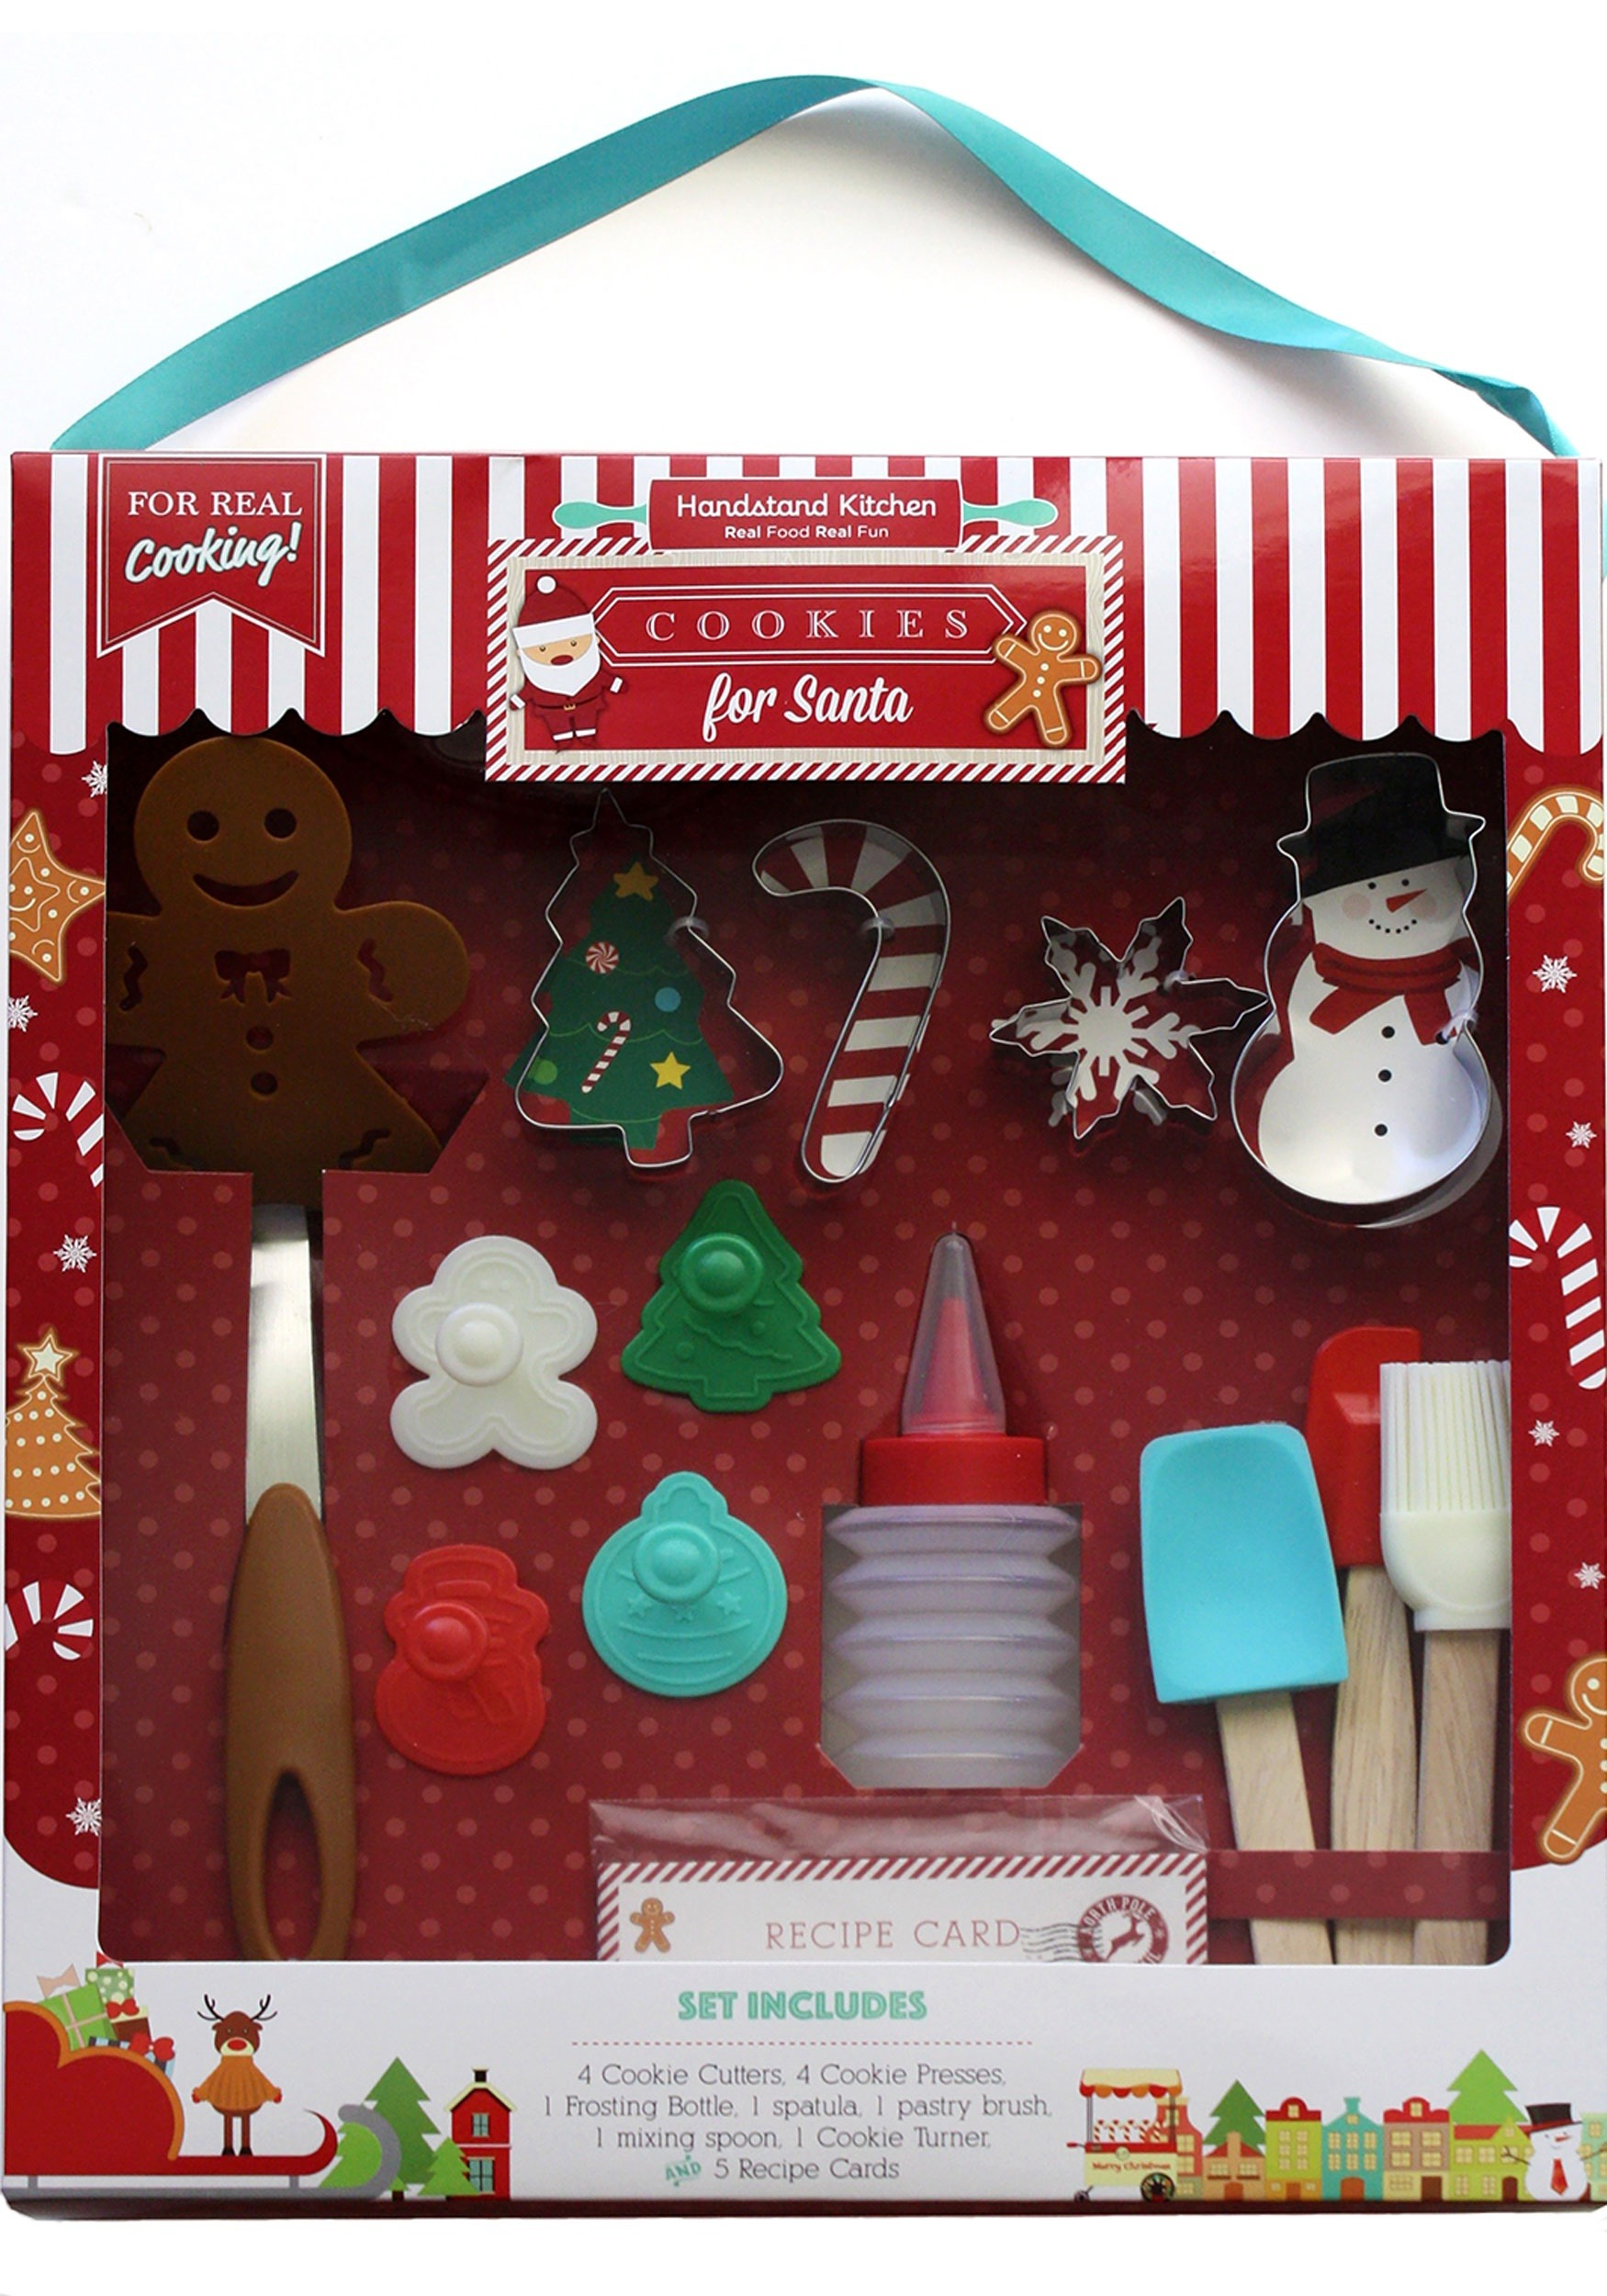 Handstand Kitchen 18 Piece Christmas Cookies for Santa